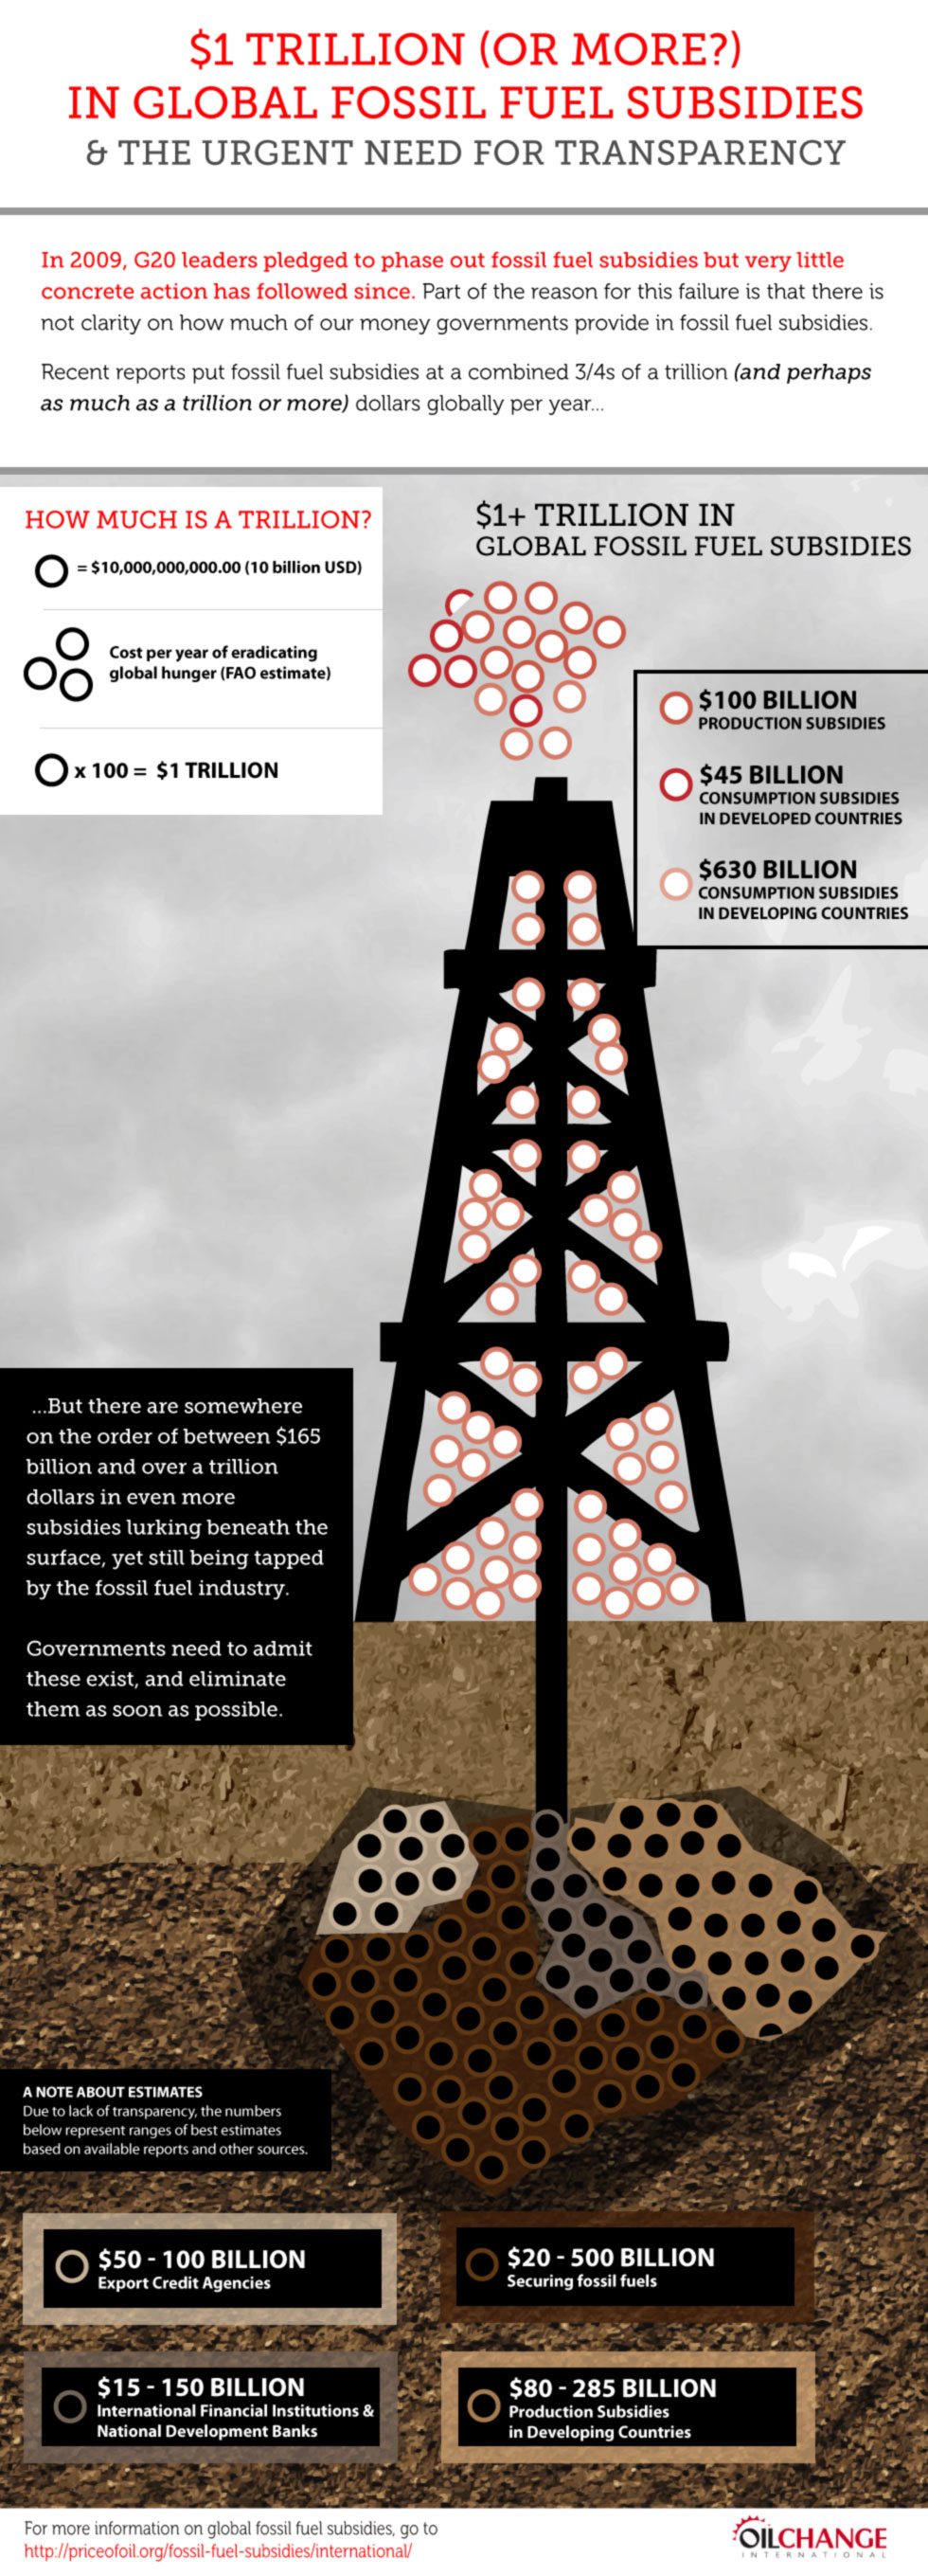 Oil Change International worldwide oil subsidies infographic